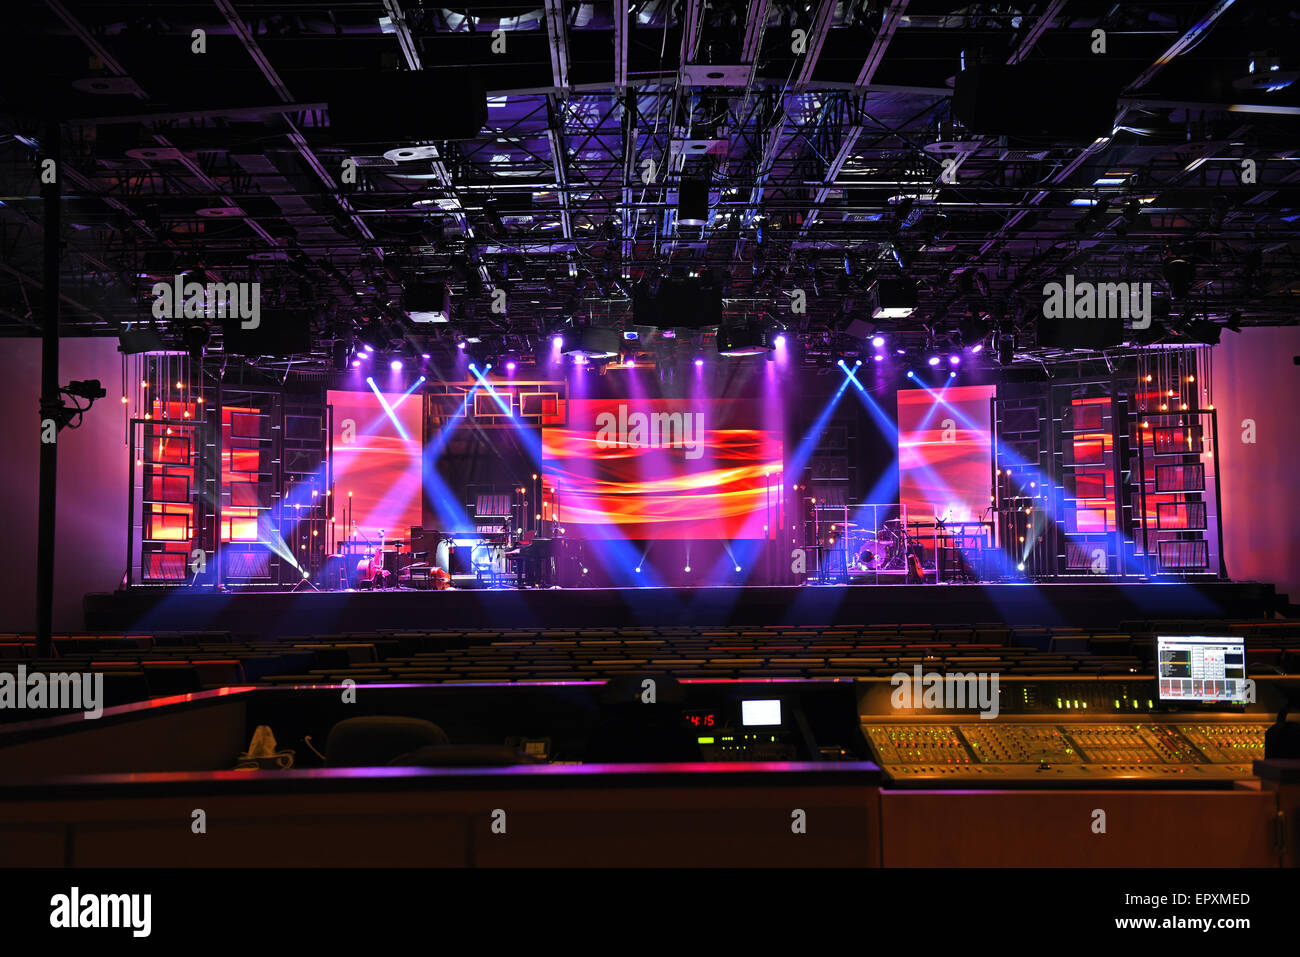 Concert stage lights with electronic console in foreground - Stock Image